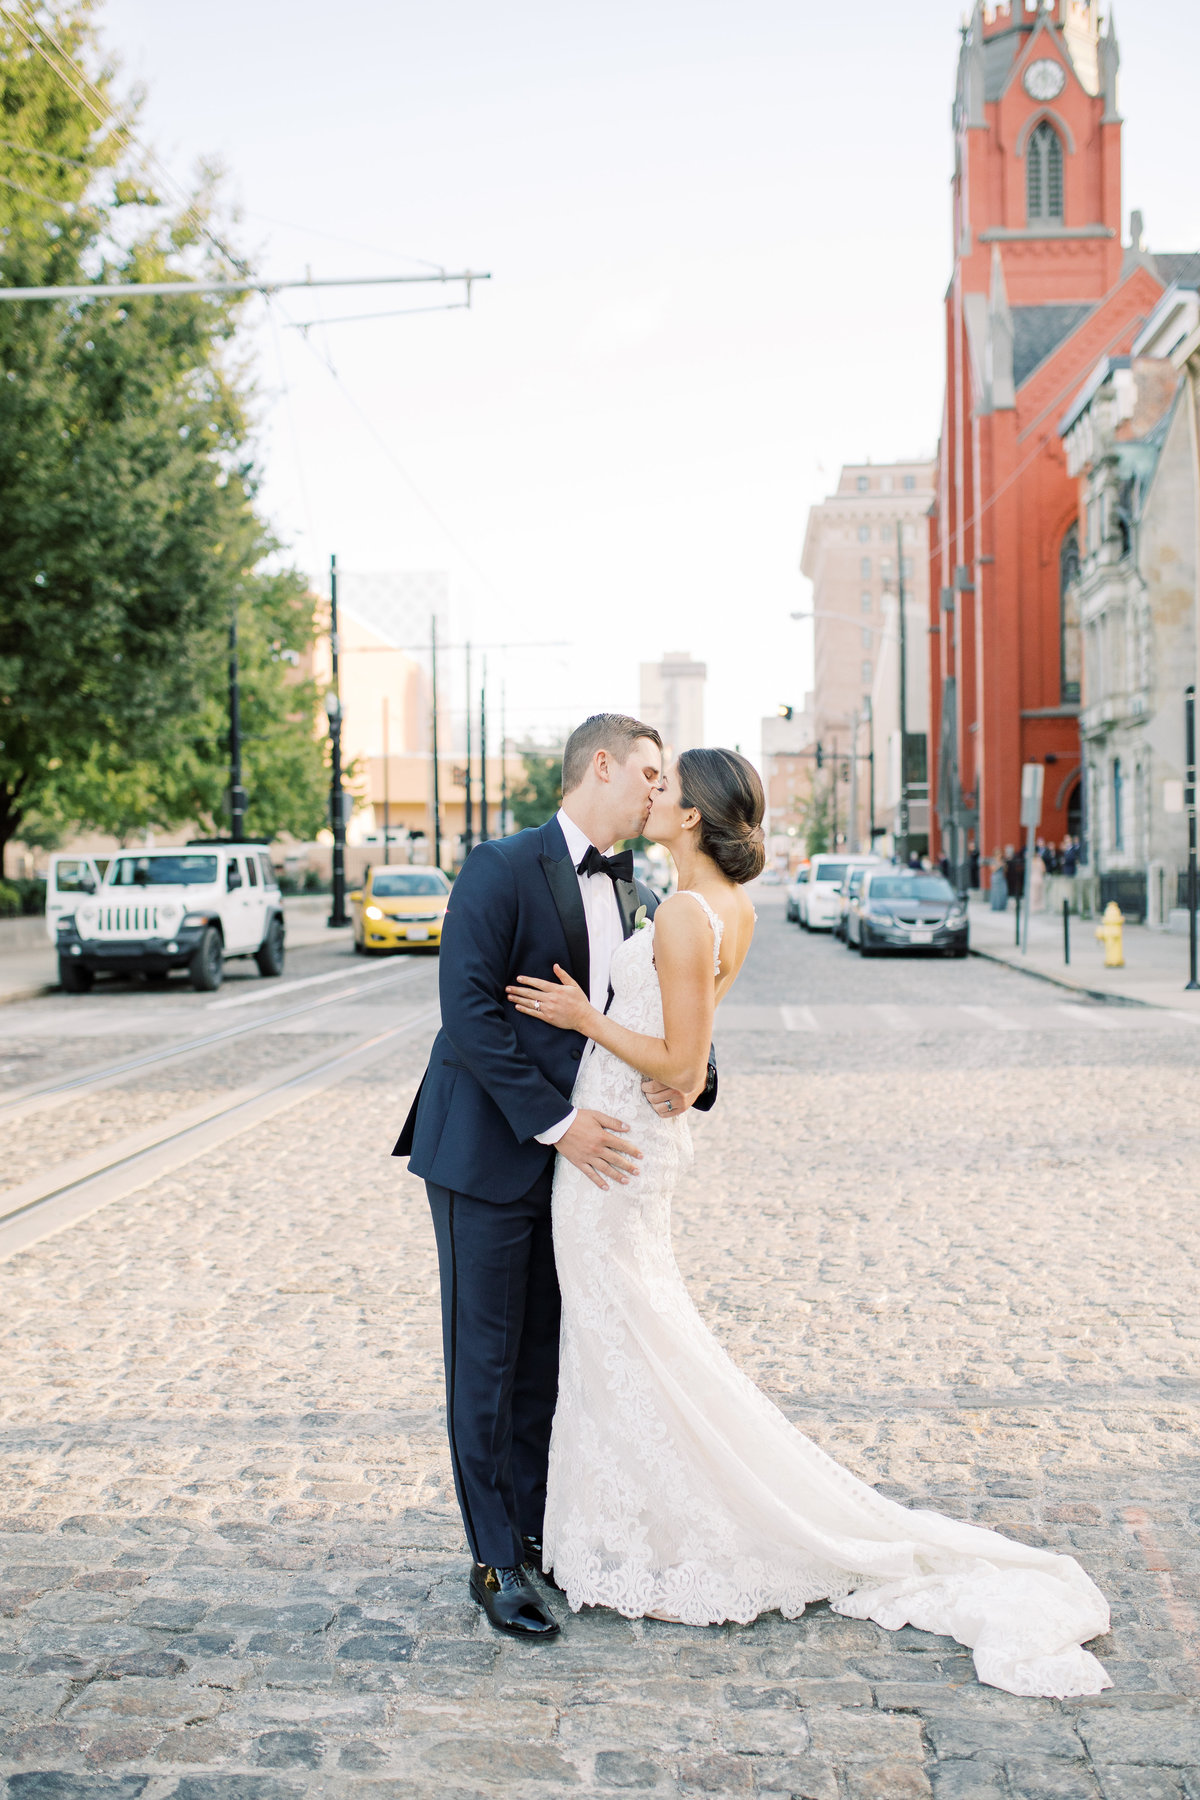 Bride and groom kiss in the middle of the street in downtown Cincinnati, Ohio